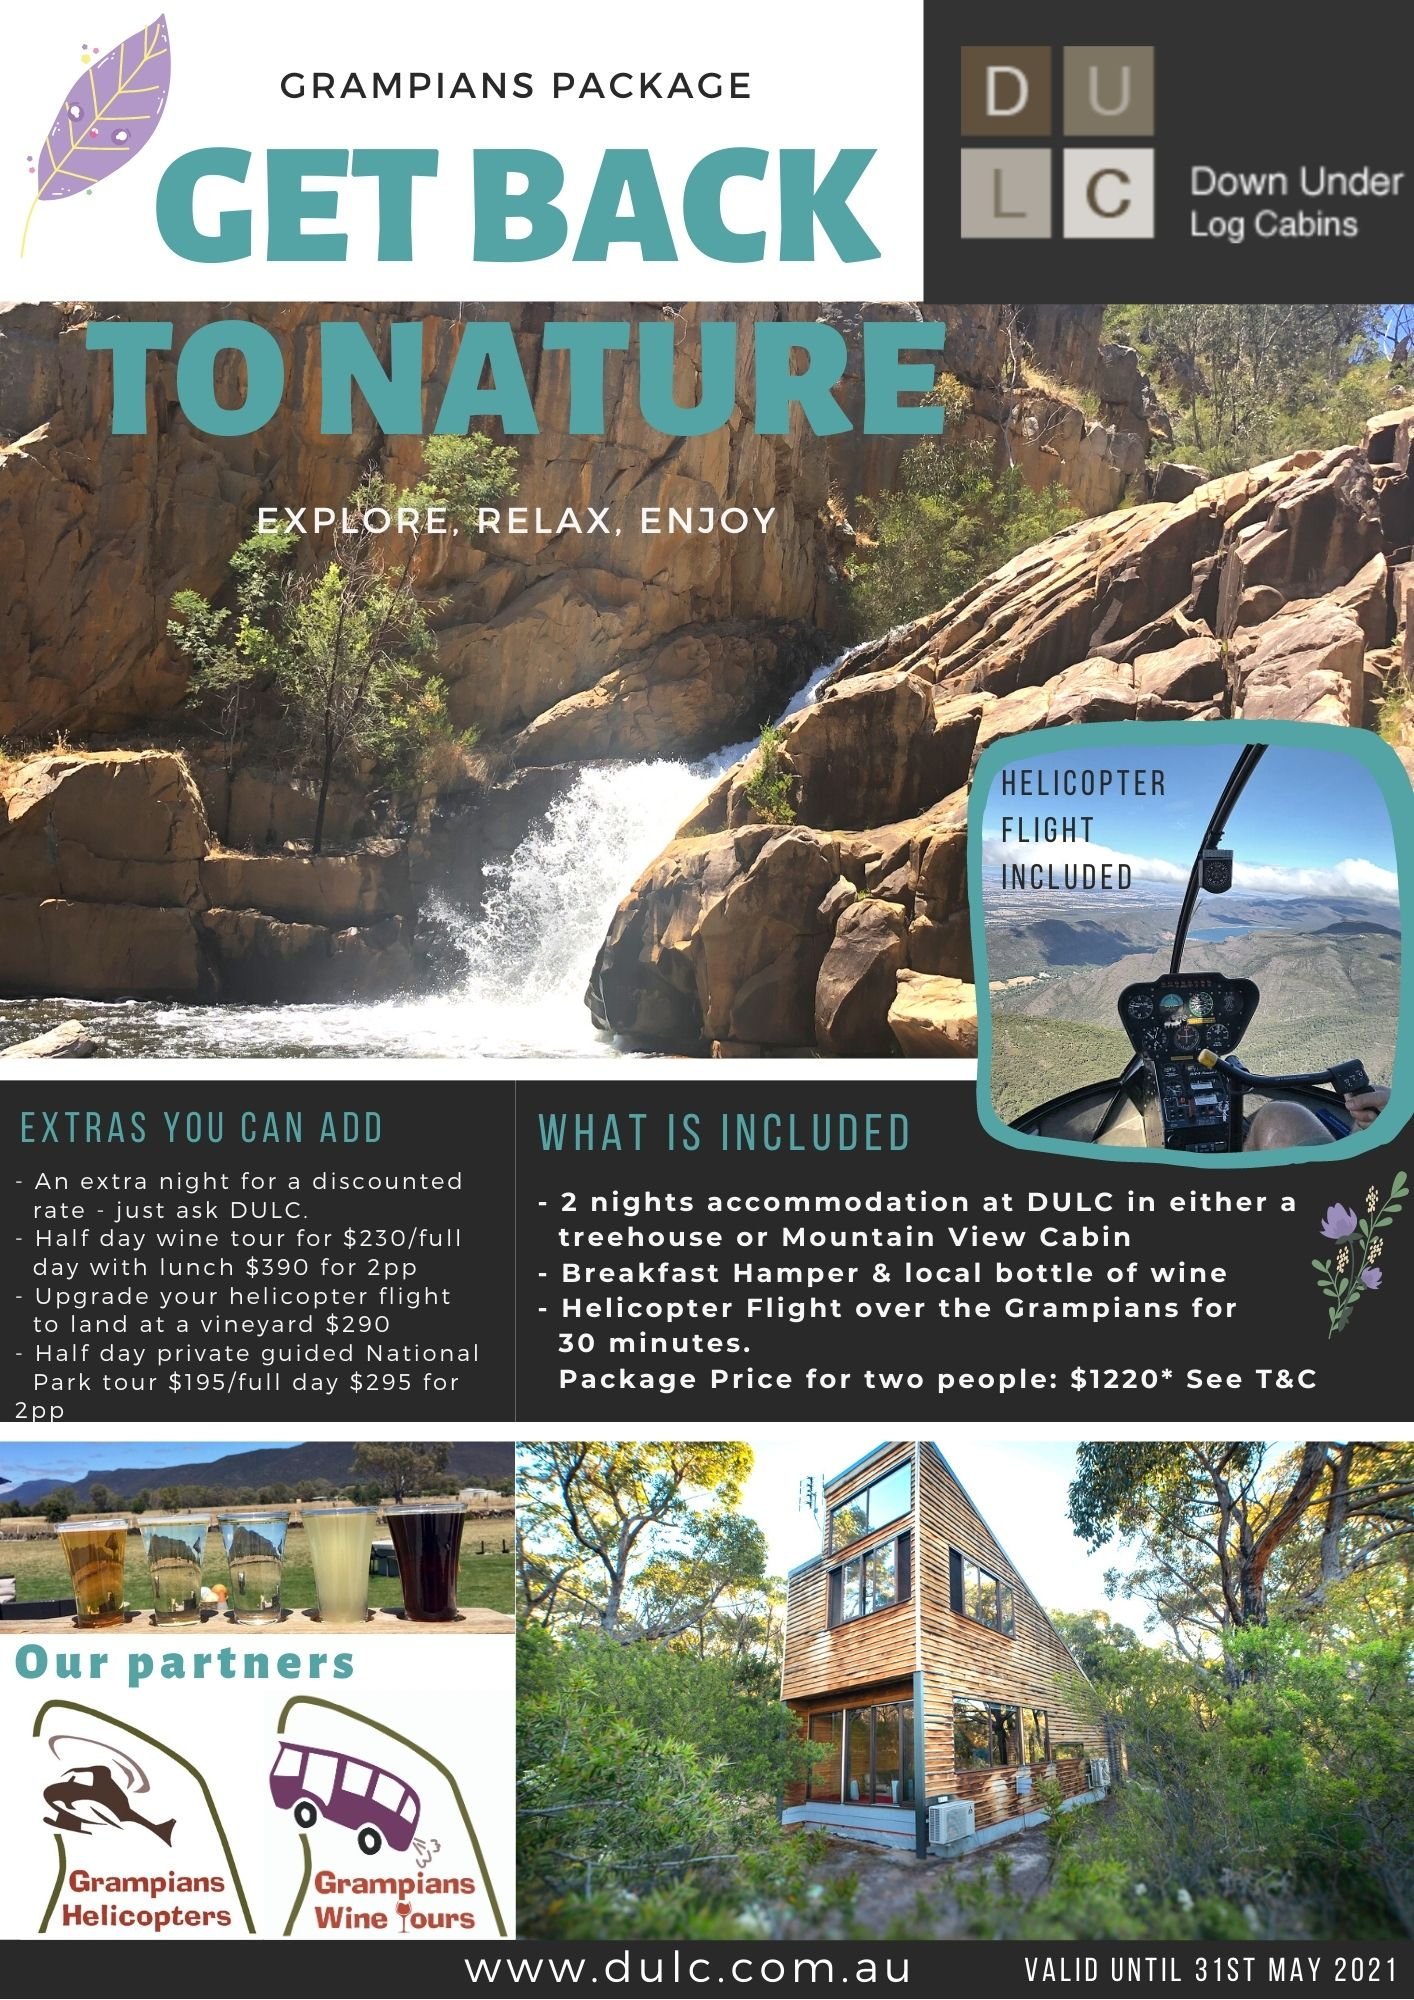 Scenic Stay and Explpre